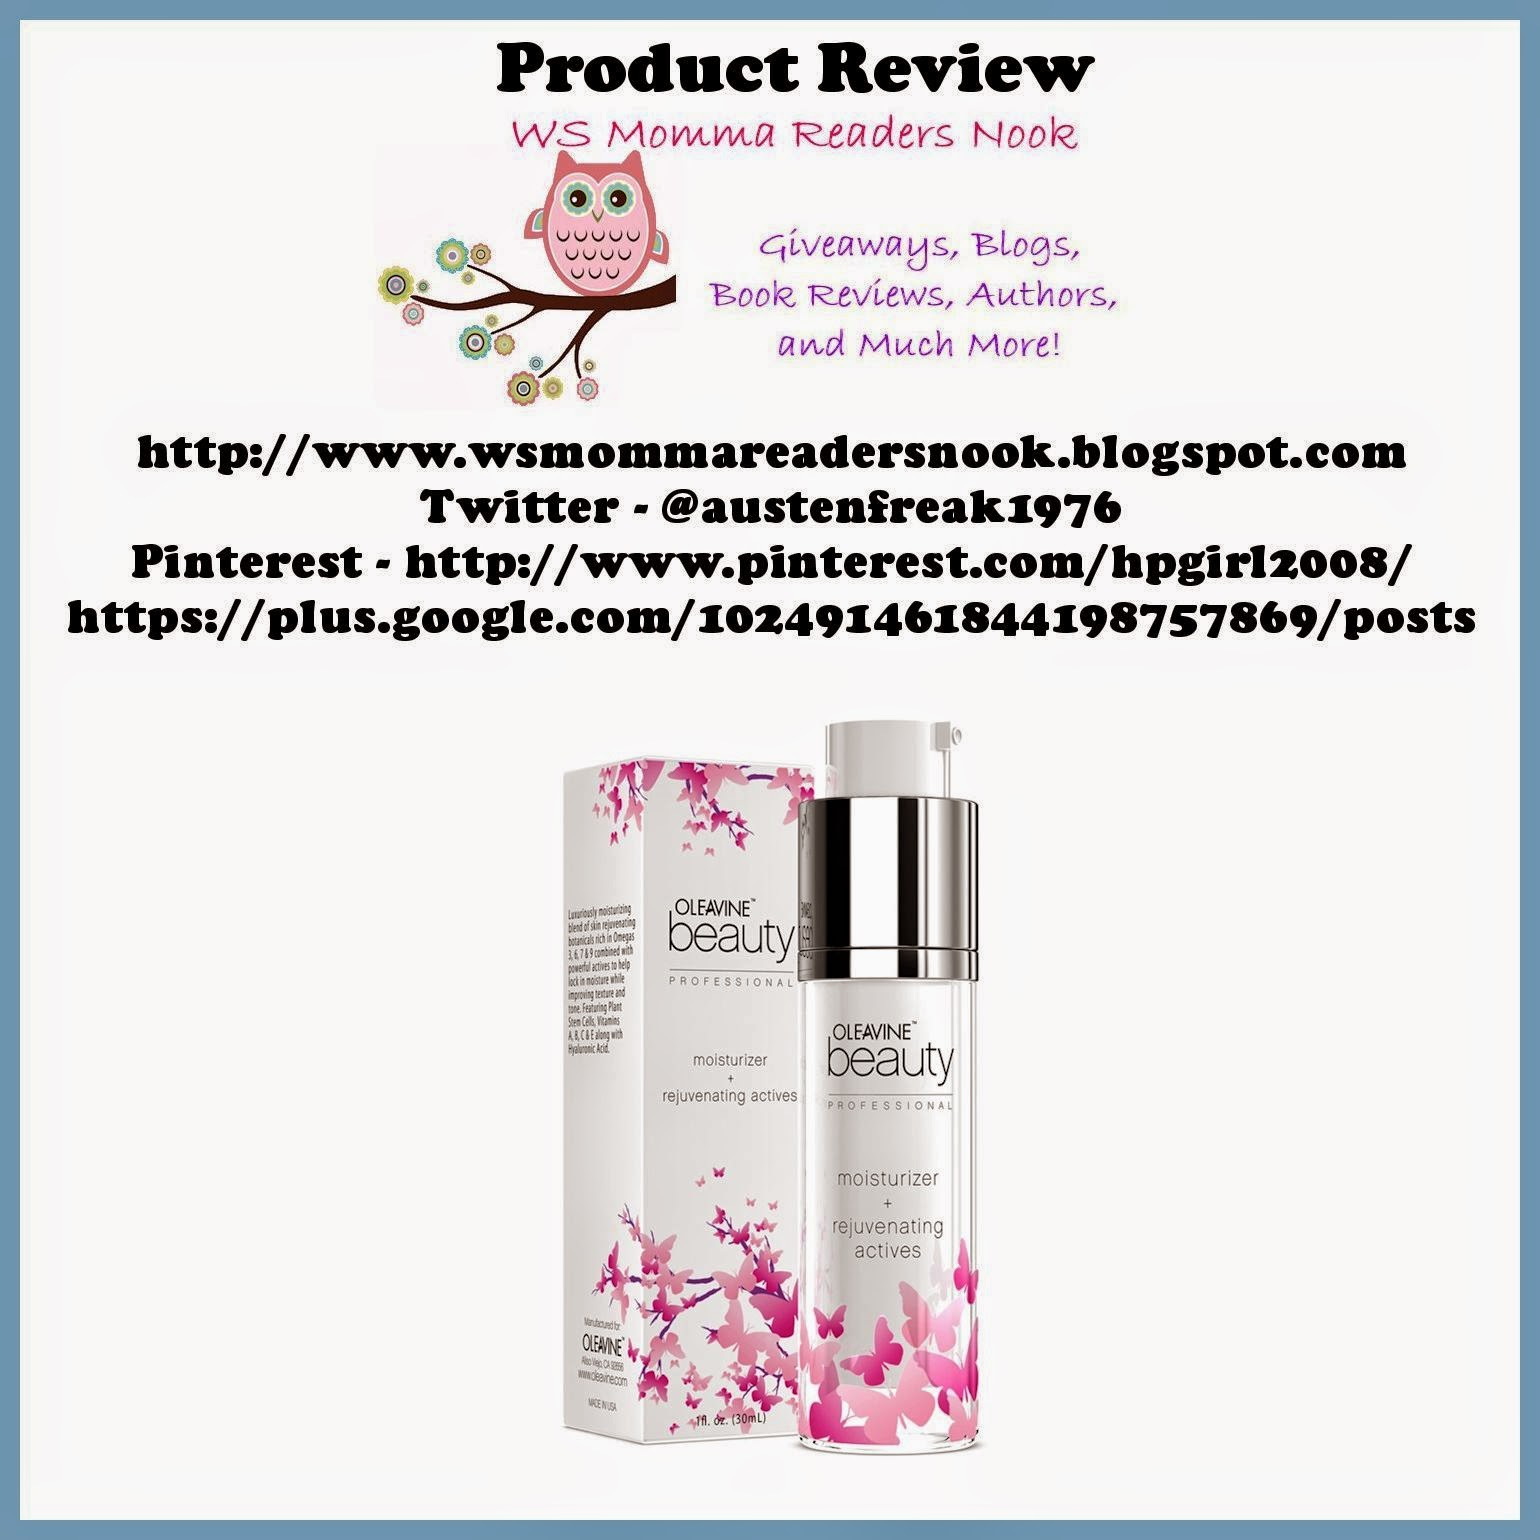 http://www.amazon.com/anti-aging-facial-moisturizer-ingredients-luxuriously/dp/b00p1q35n2/?keywords=facial+moisturizer